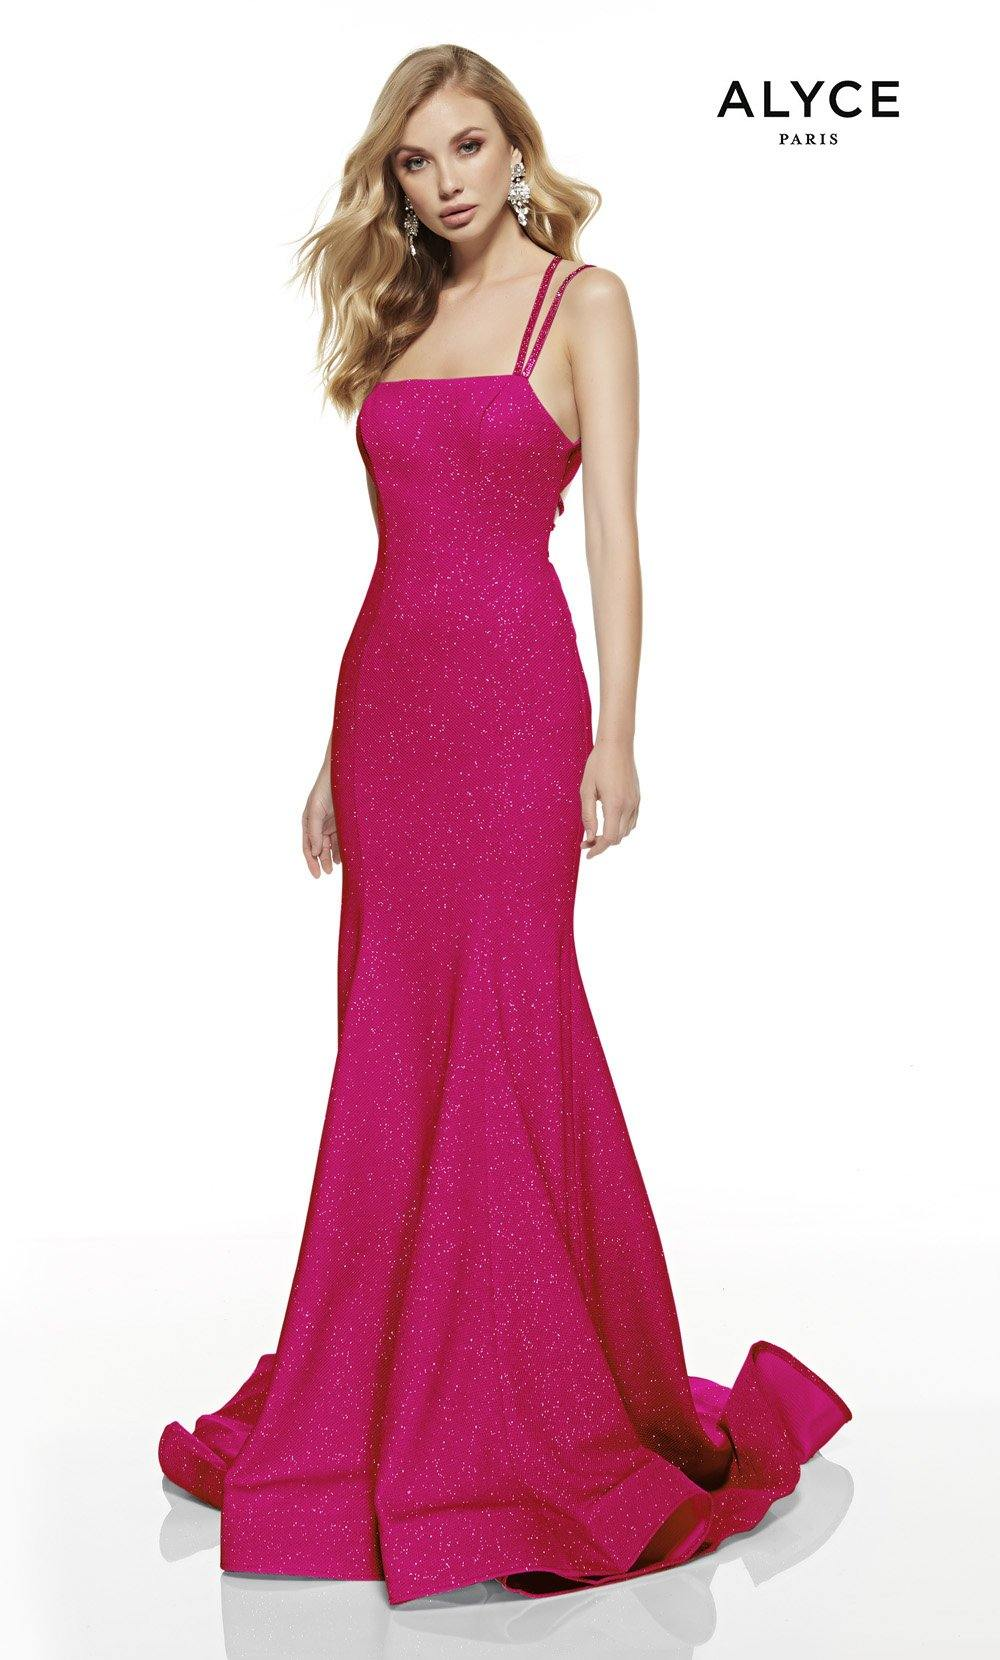 Hot Pink mermaid style prom dress with a squared neckline and a sweep train